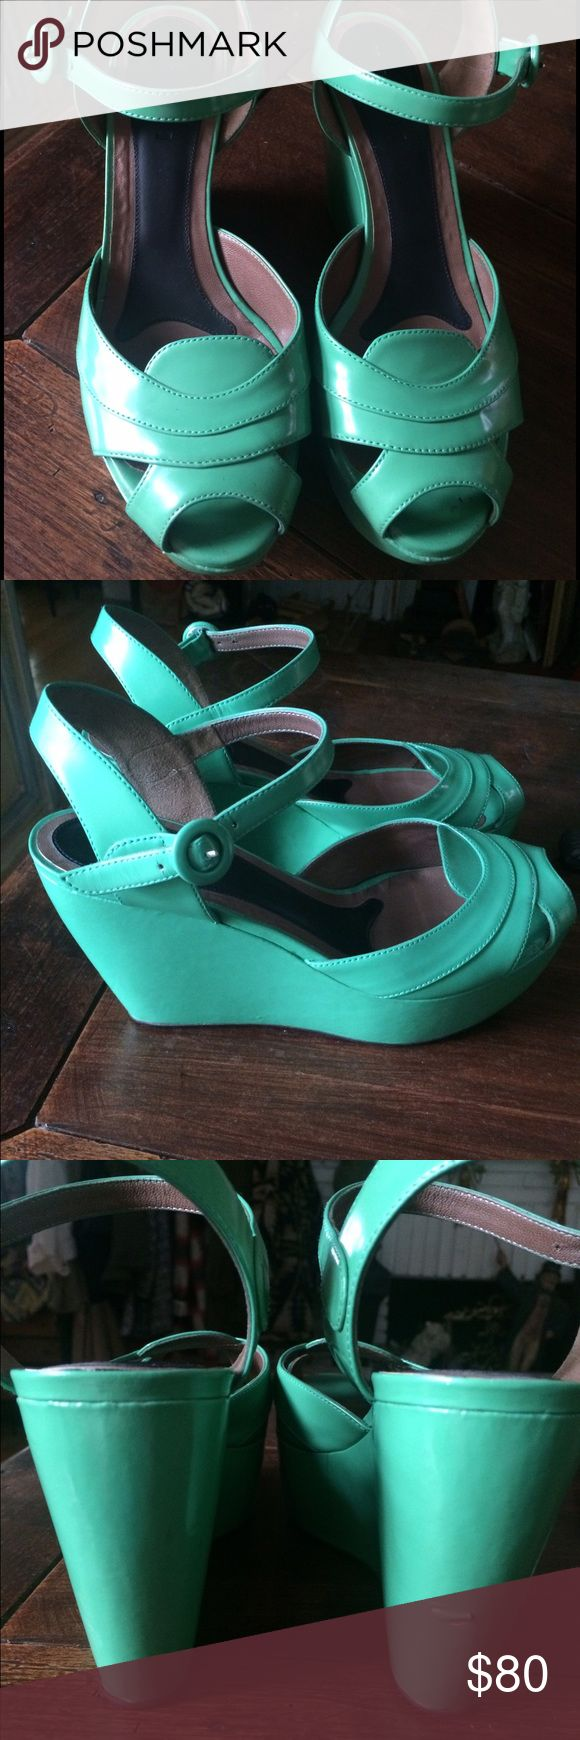 """MARNI patent green wedge sandals Reposhing these beauties because the heel height is too high for me. Selling at this price to make my money back. Very comfortable green wedges by MARNI. 4"""" wedge heel, 2"""" platform. Size 10, but can also fit a size 9.5. There's a small scuff/nick on the backside of one of the heels. This can be easily repaired by a cobbler. Retail value is over $700! Listing under Anthro for exposure. Marni Shoes Wedges"""